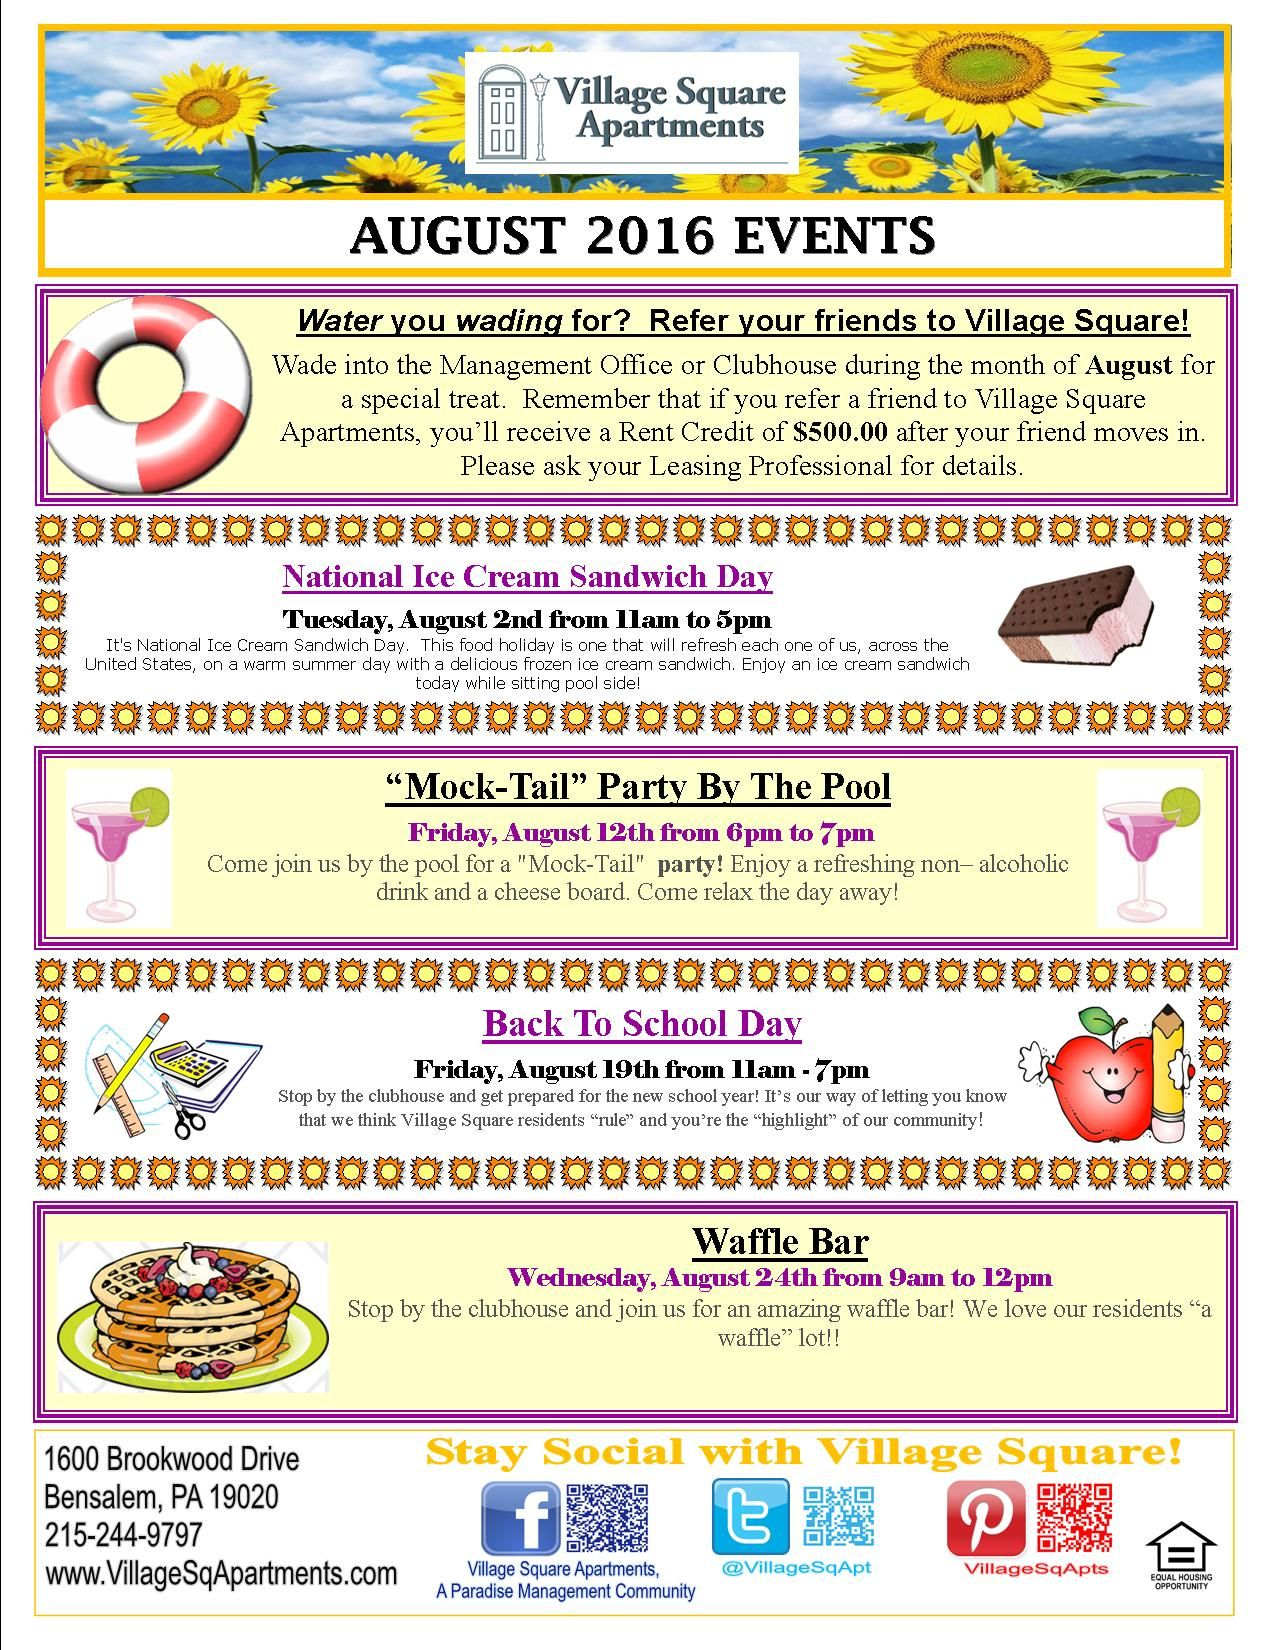 Pin by Village Square Apartments on Resident Events | Pinterest ...